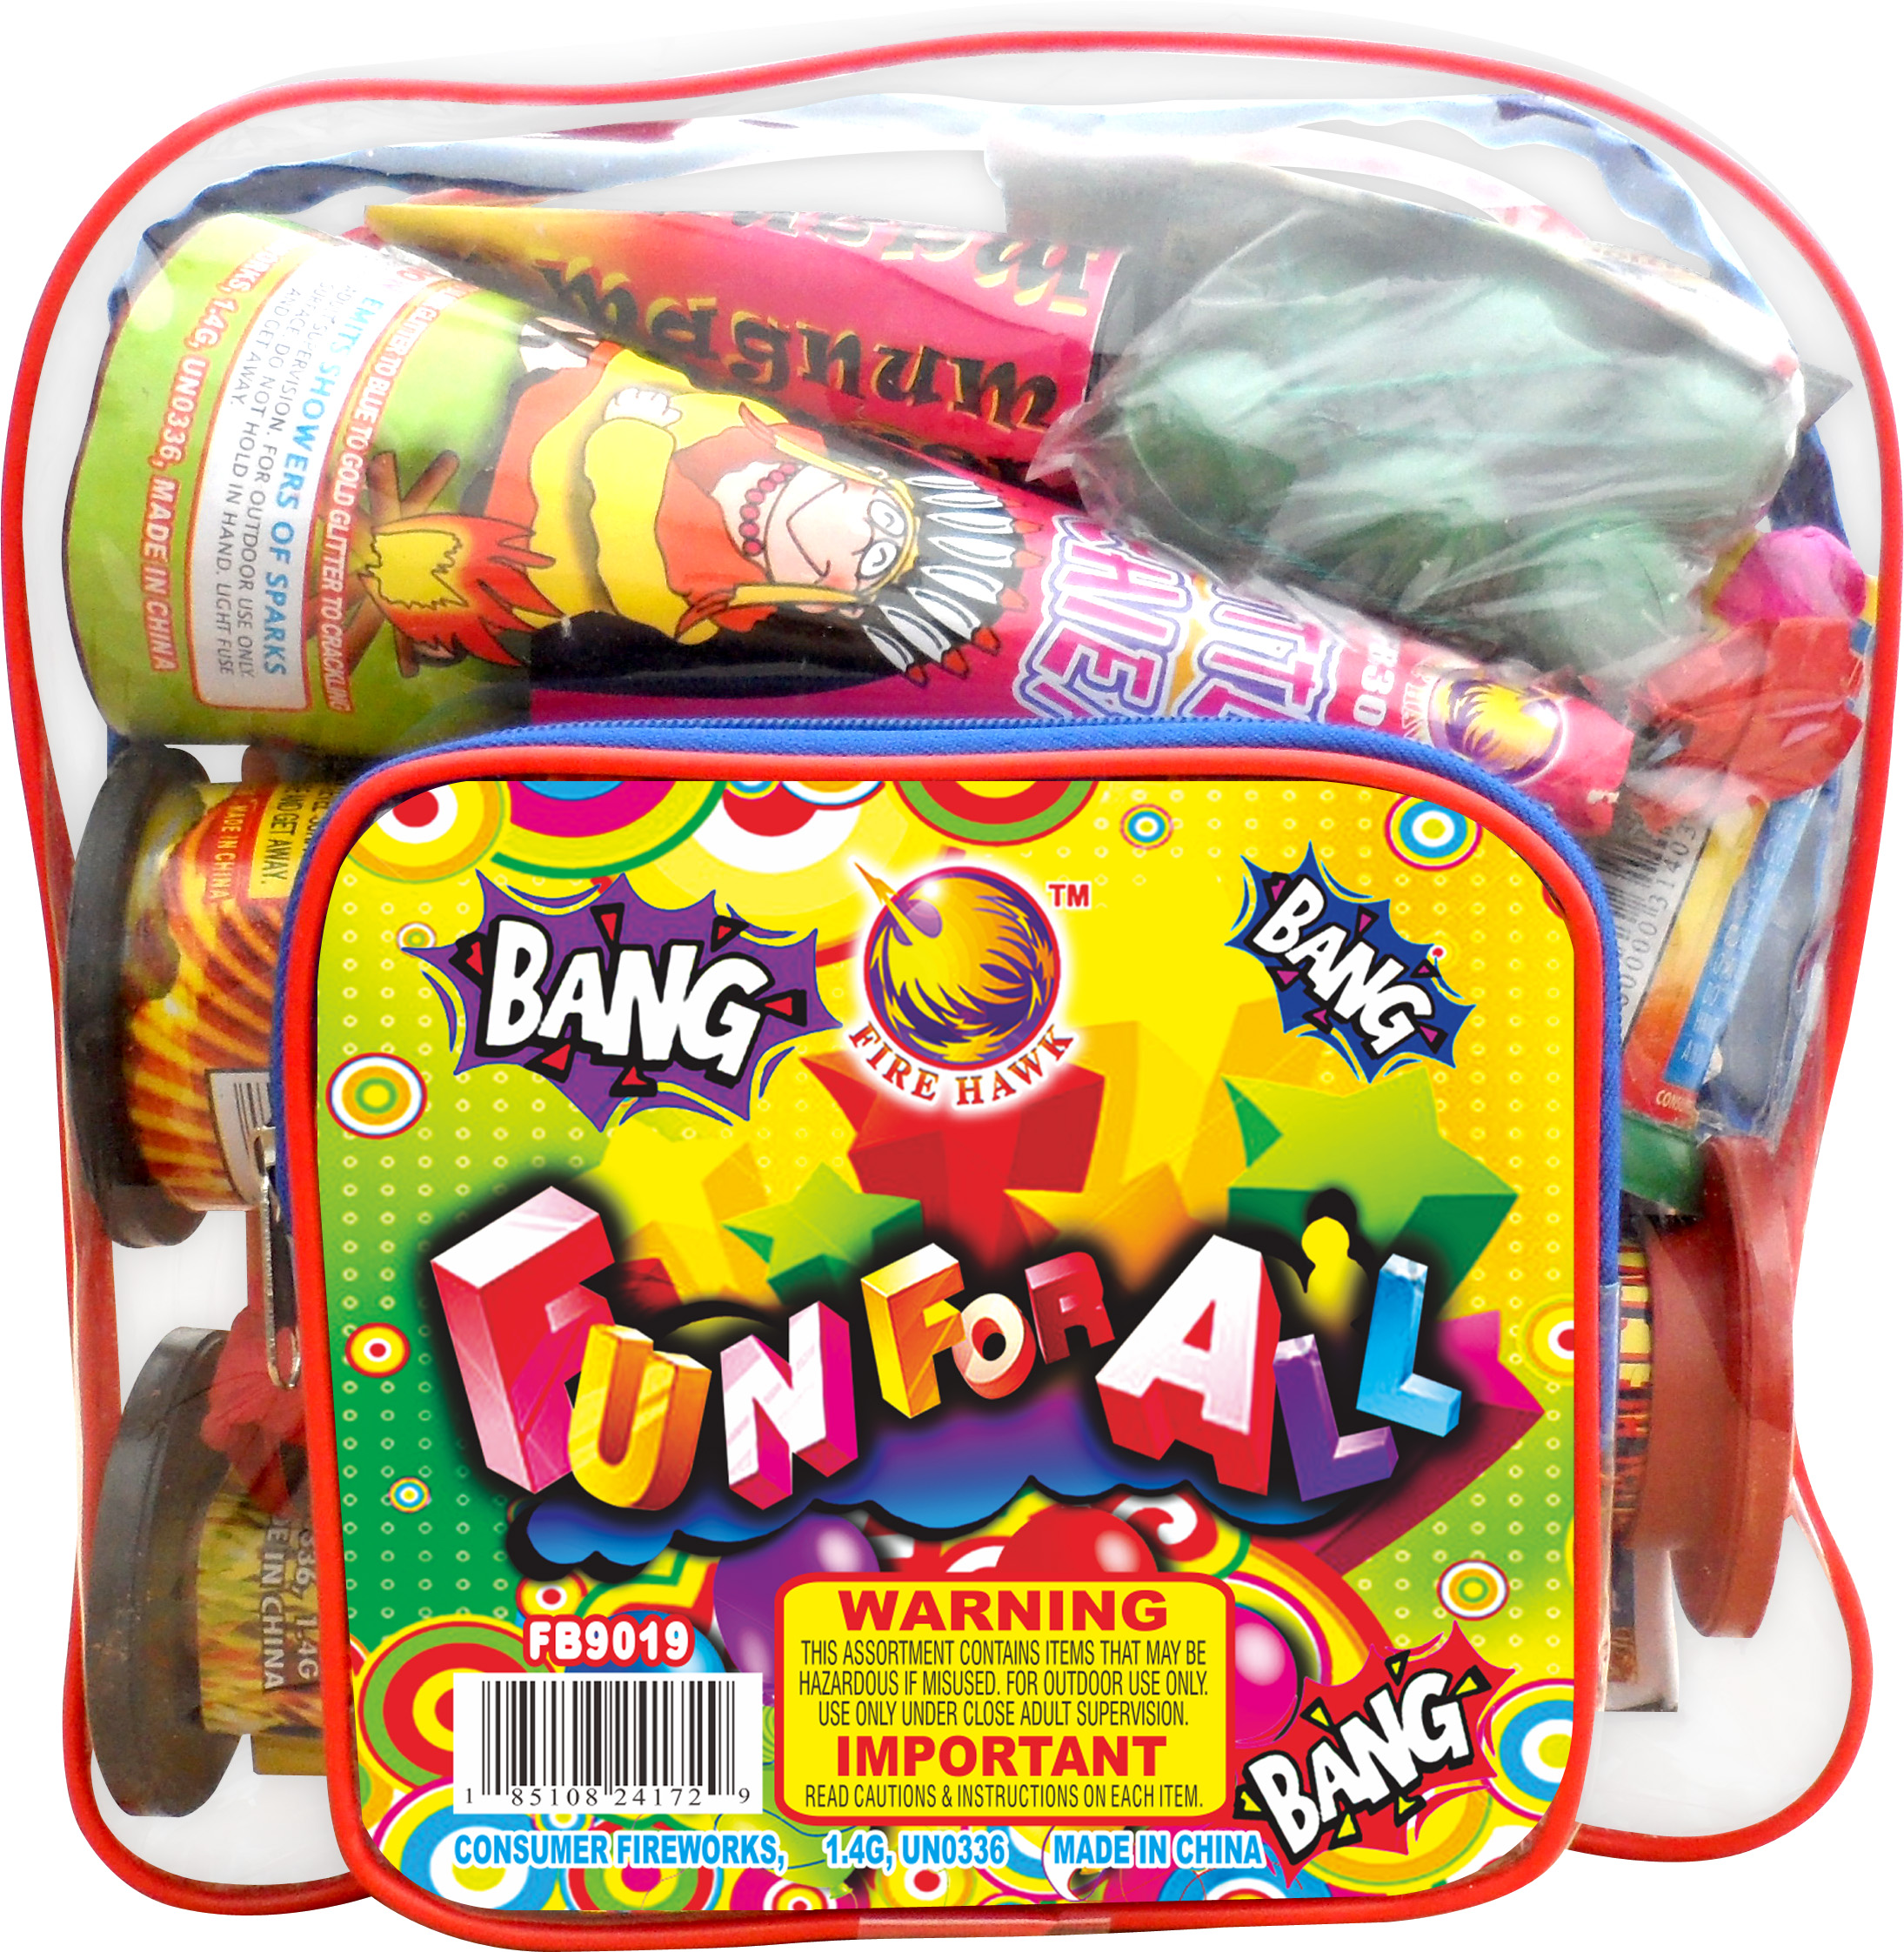 FB9019 Fun For All (Backpack Assortment) copy